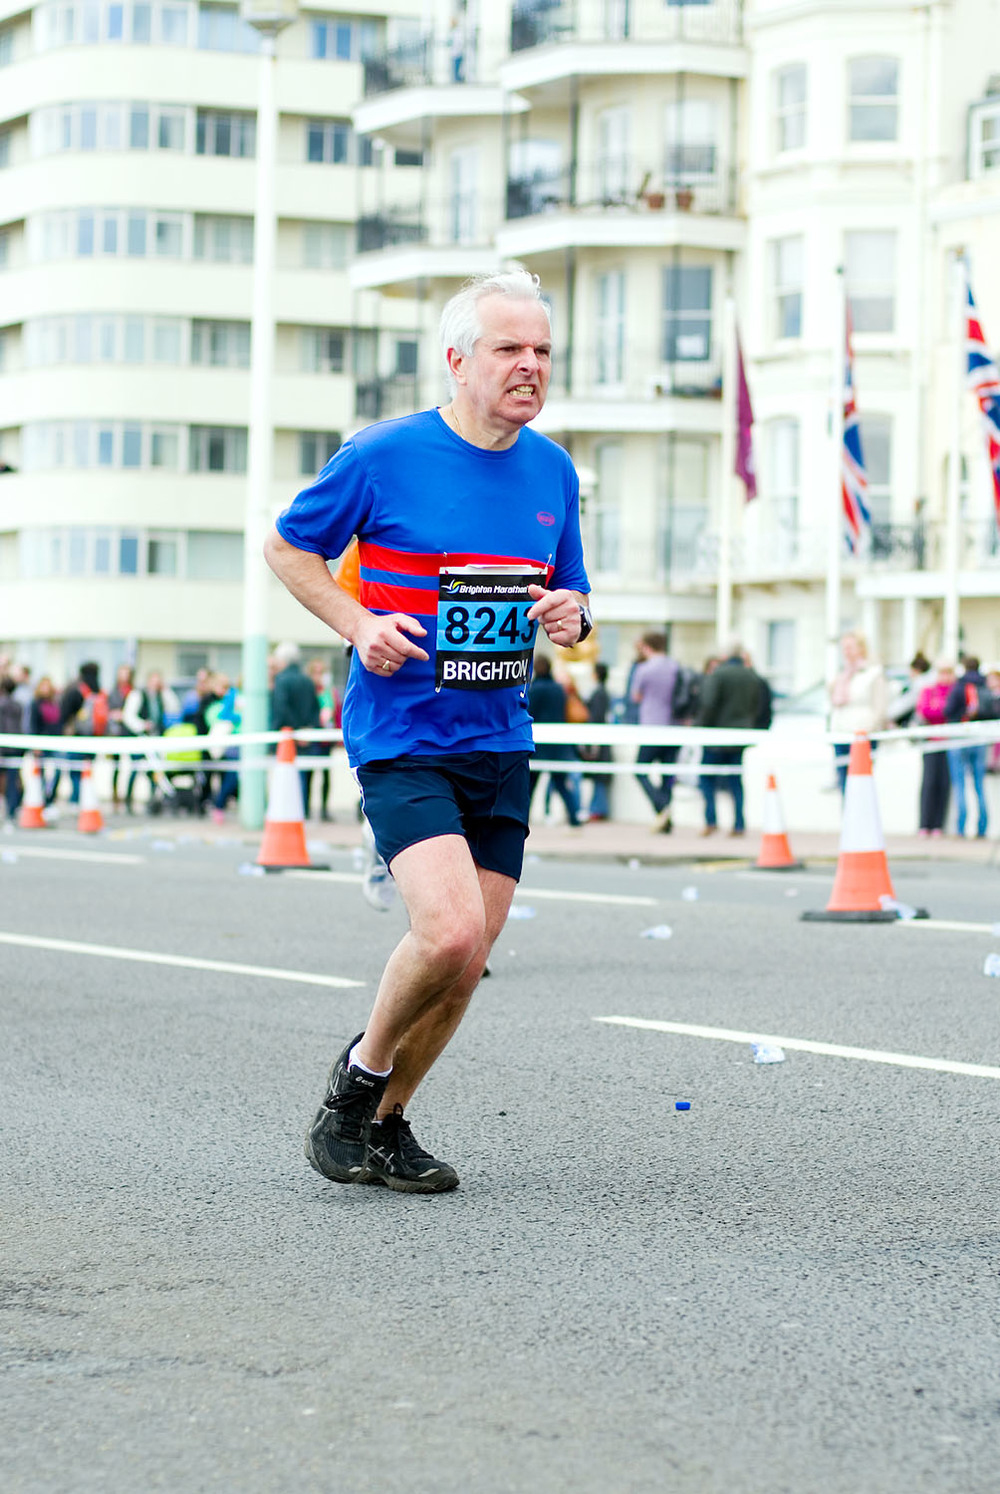 Brighton Marathon 2012 - Mile 24.75